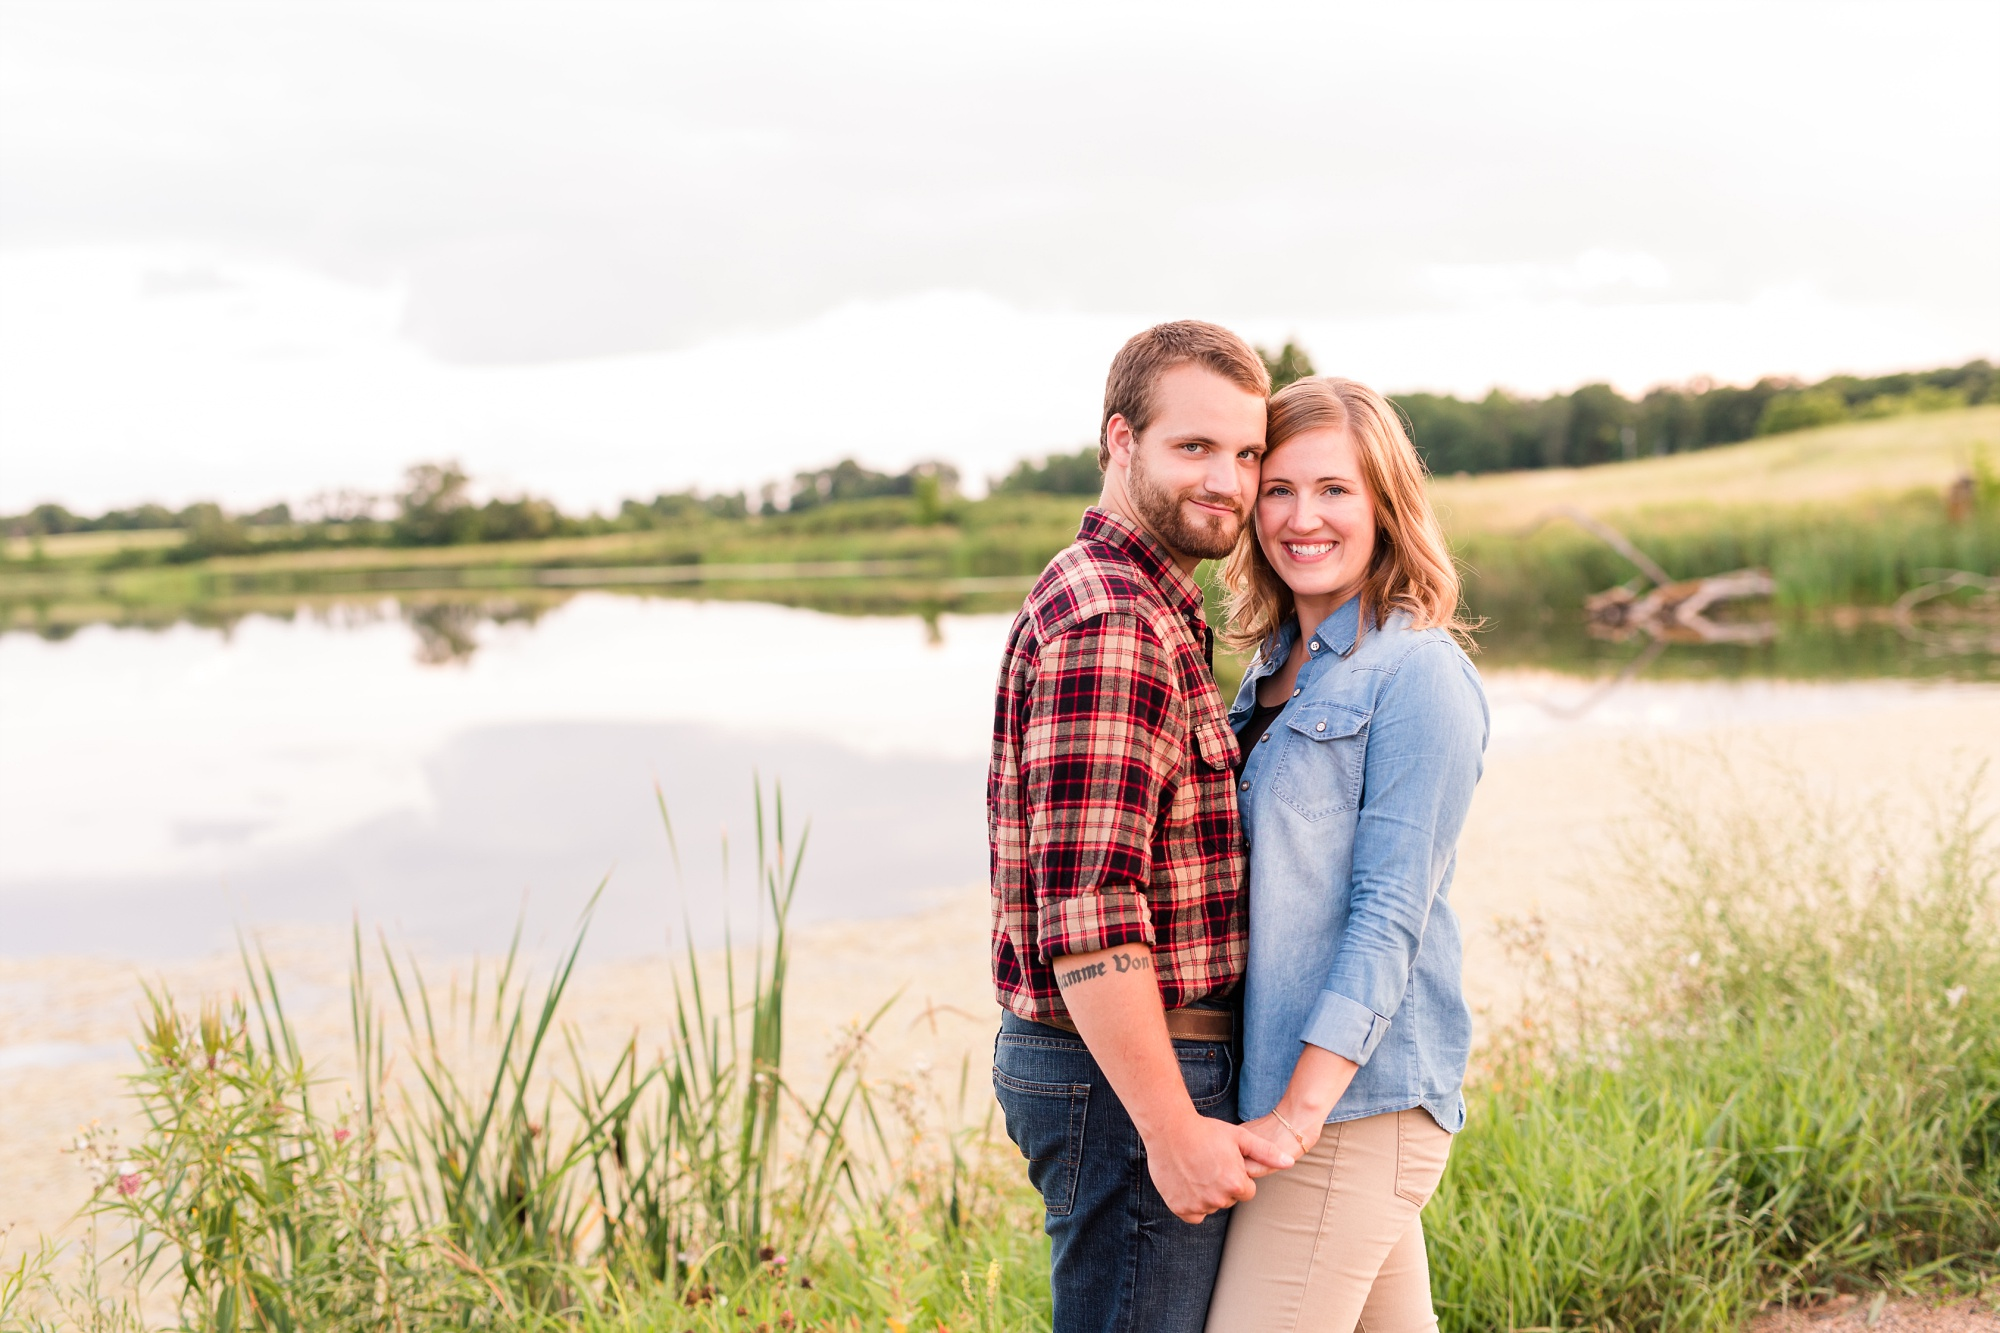 AmberLangerudPhotography_Countryside Engagement Session in Minnesota_3136.jpg